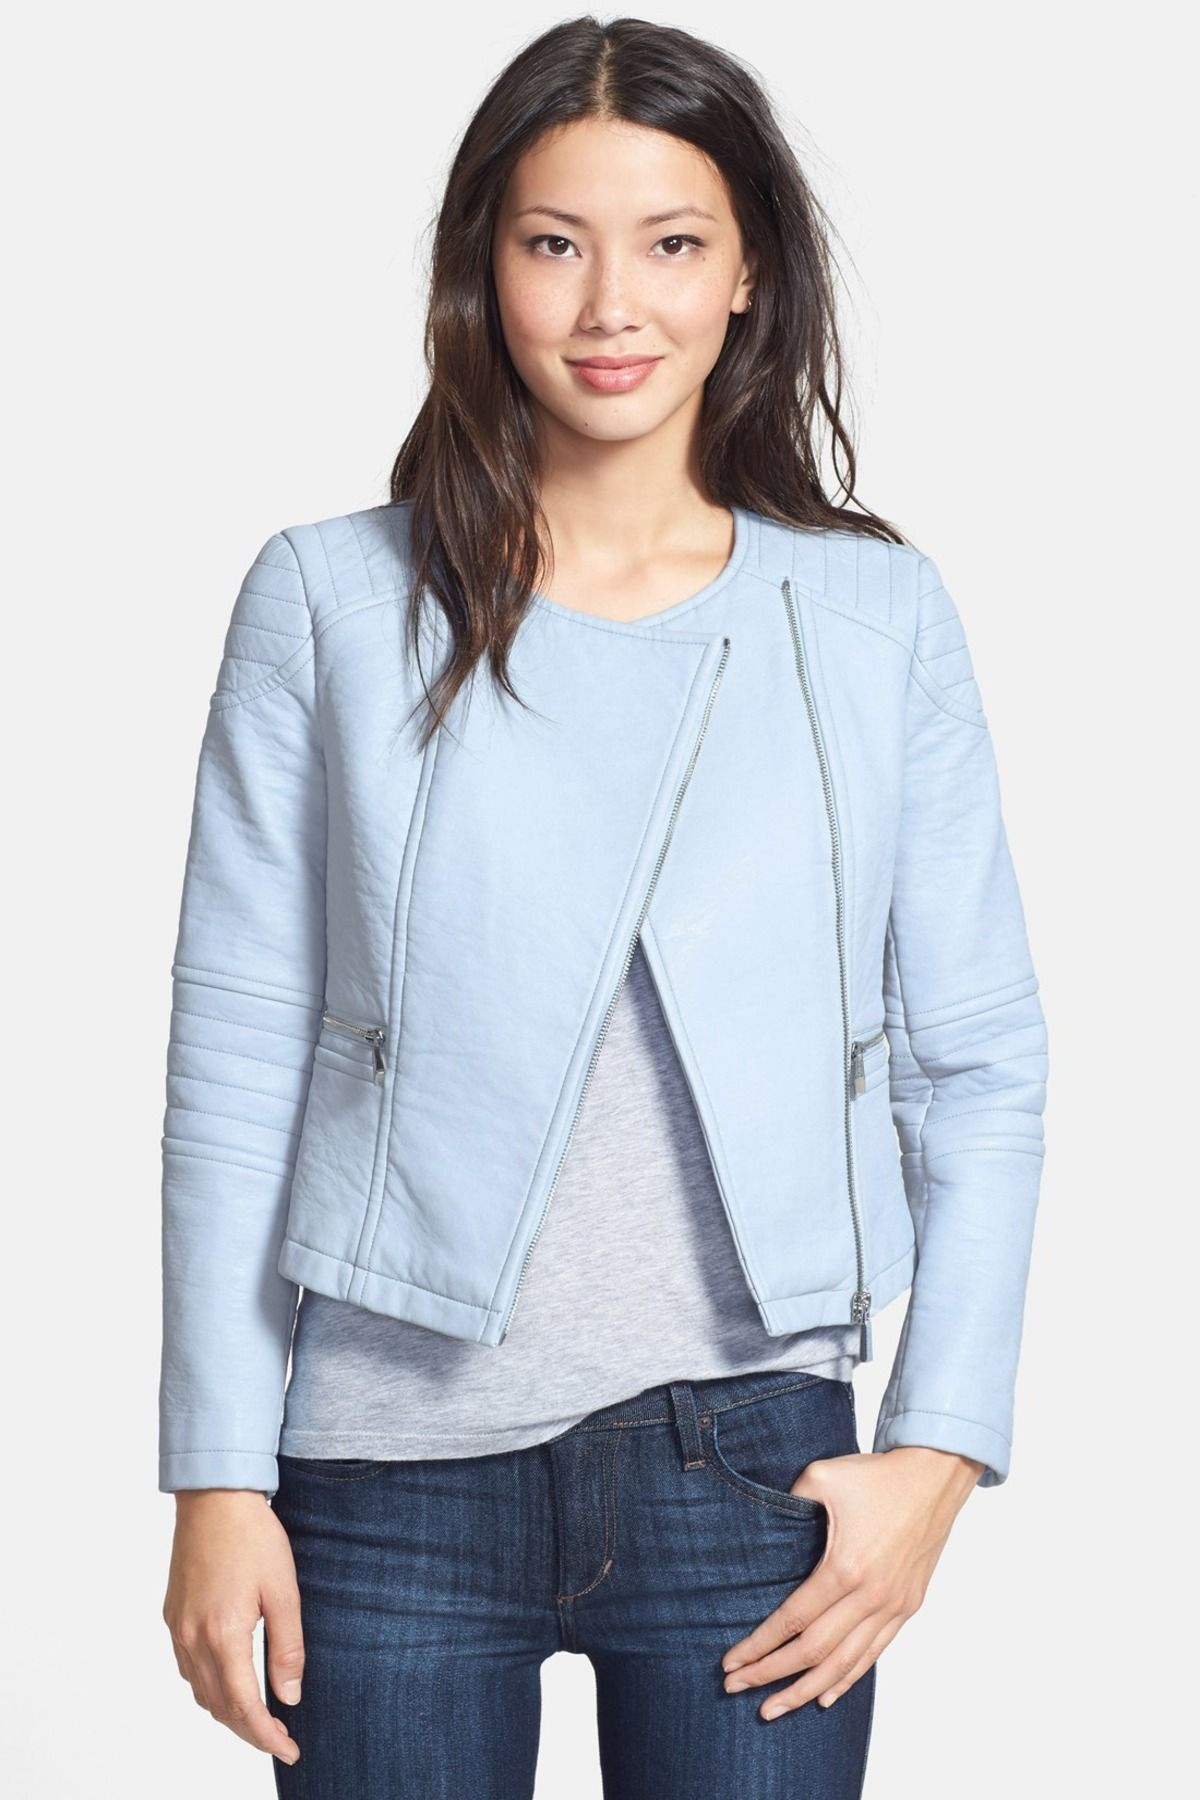 Collarless Faux Leather Jacket Petite Shopping Around